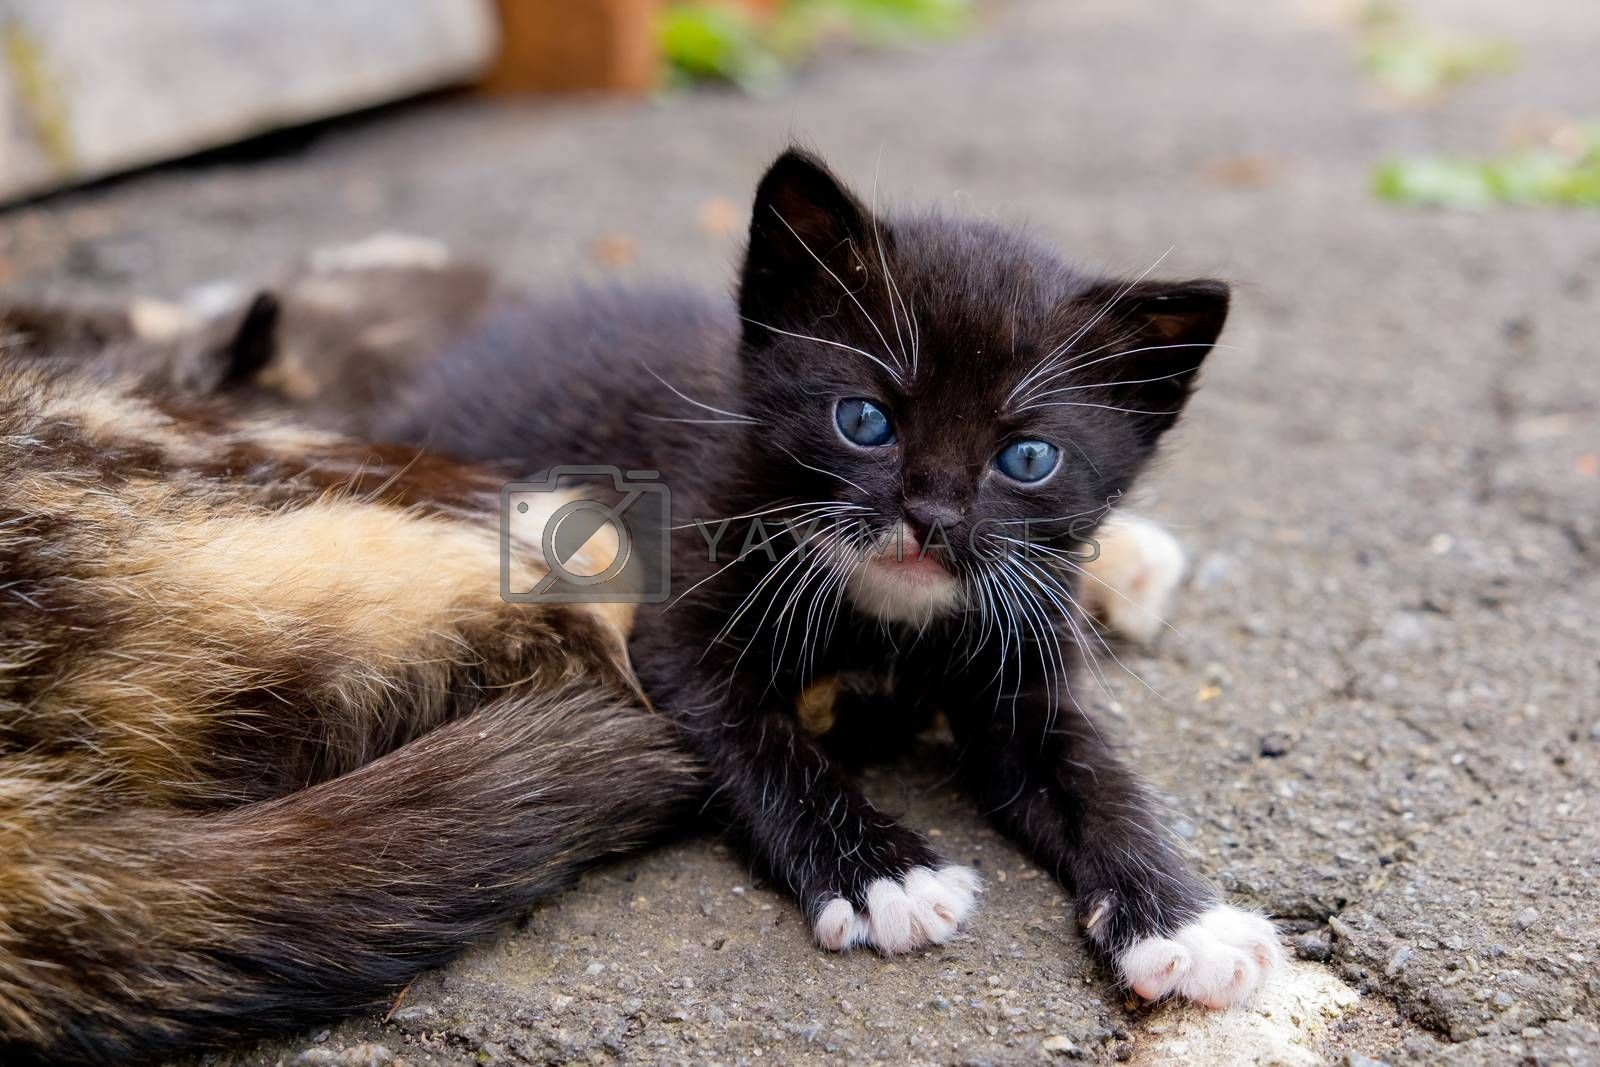 Small black kitten with blue eyes in outdoors. by leonik